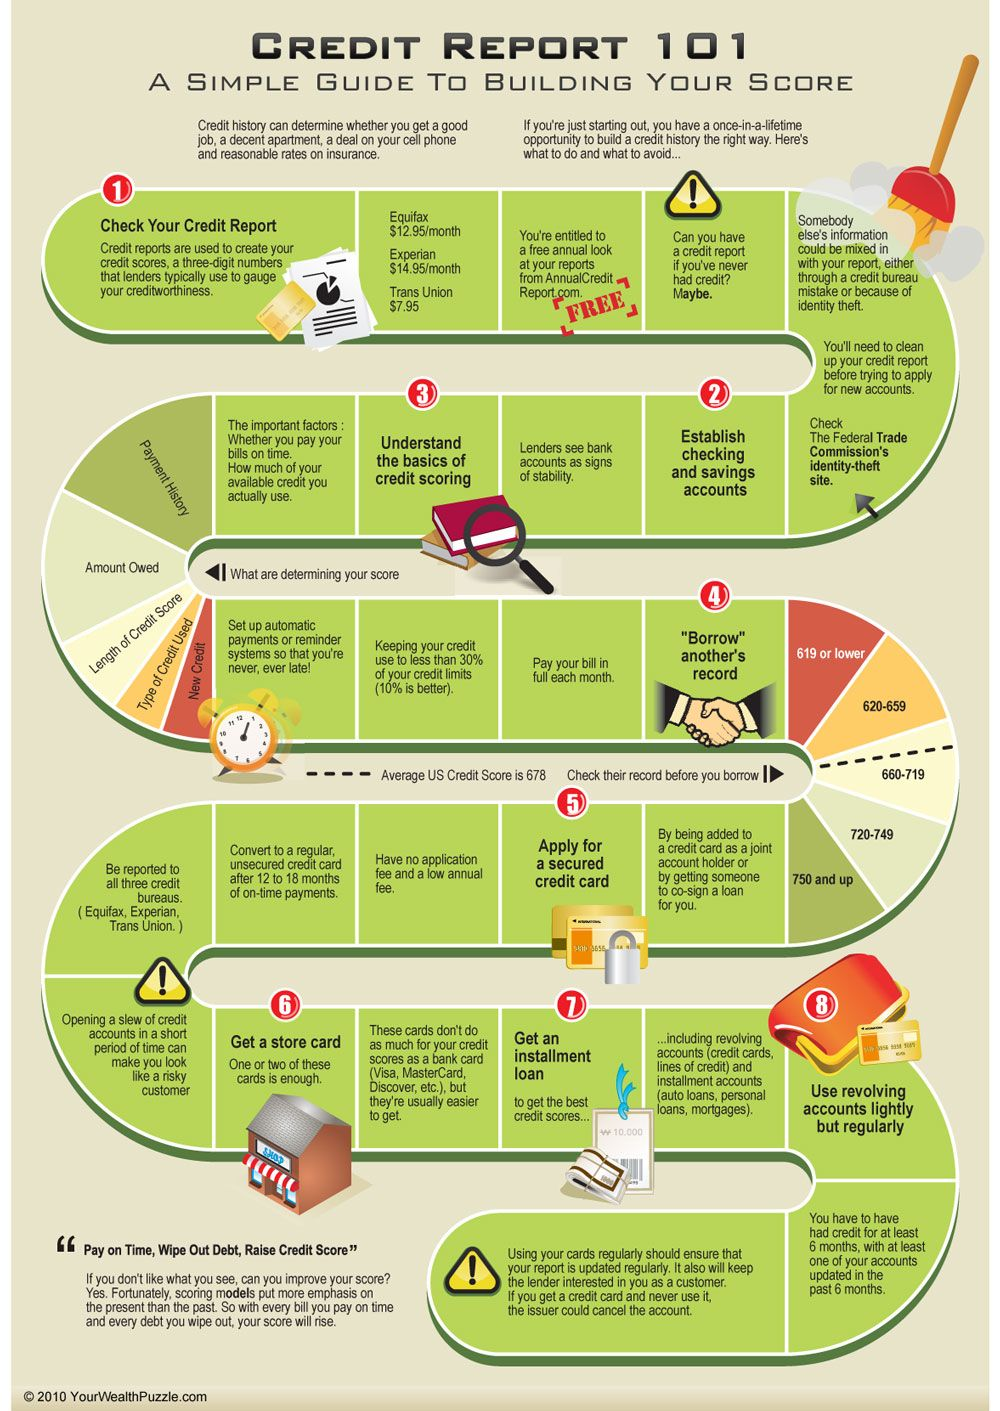 Credit Report 101 Daily Infographicdaily Infographic Improve Credit Score Credit Repair Improve Credit